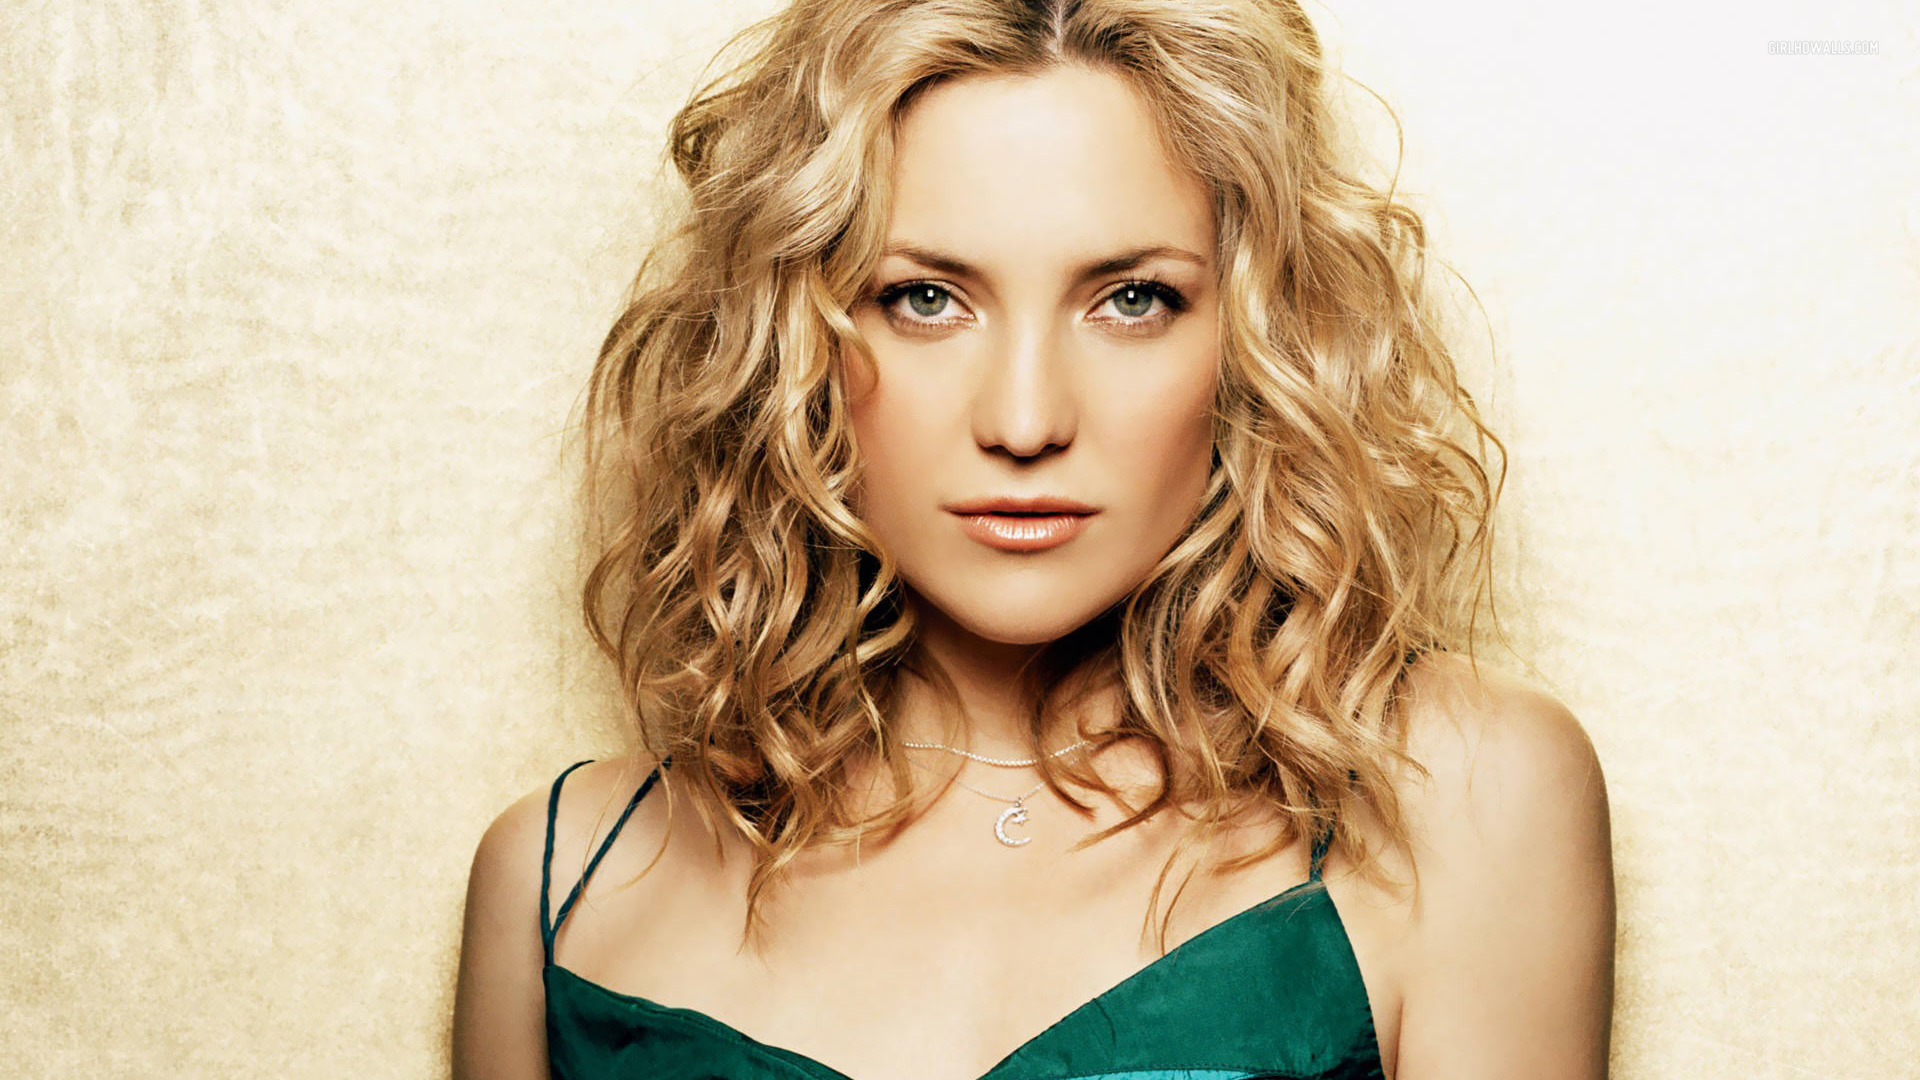 Kate Hudson 2013 Exclusive HD Wallpapers 4875 1920x1080